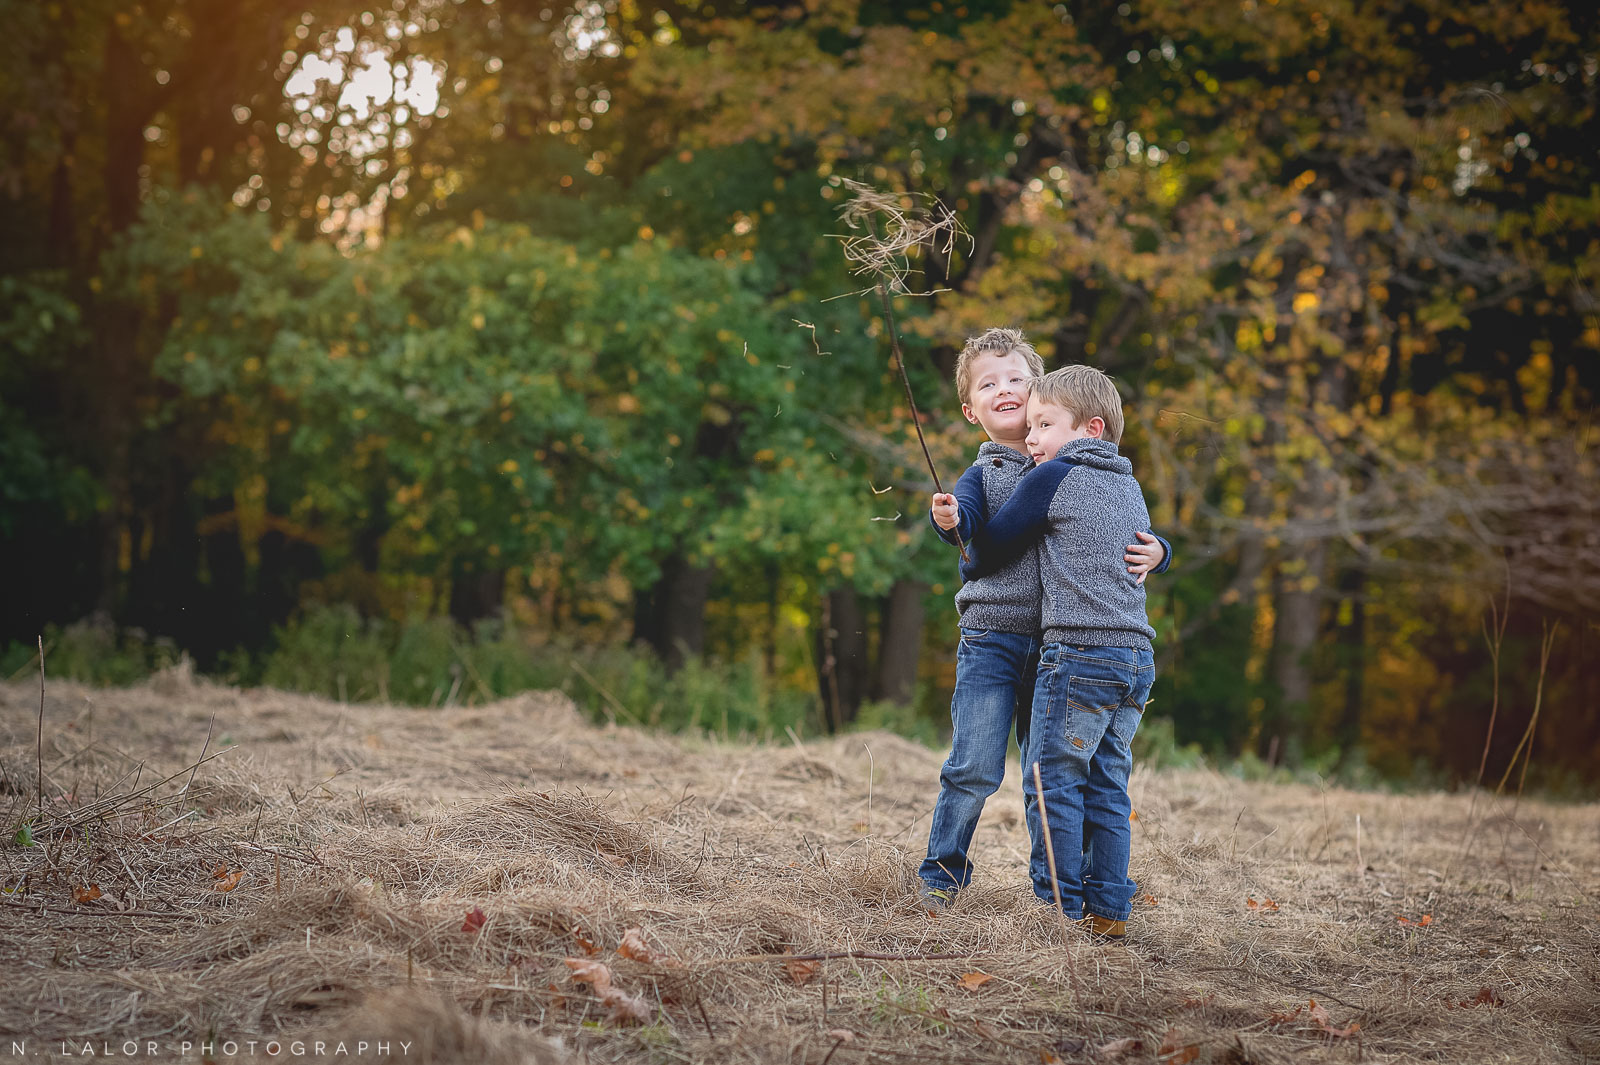 nlalor-photography-2014-styled-family-life-new-canaan-nature-center-fall-15.jpg